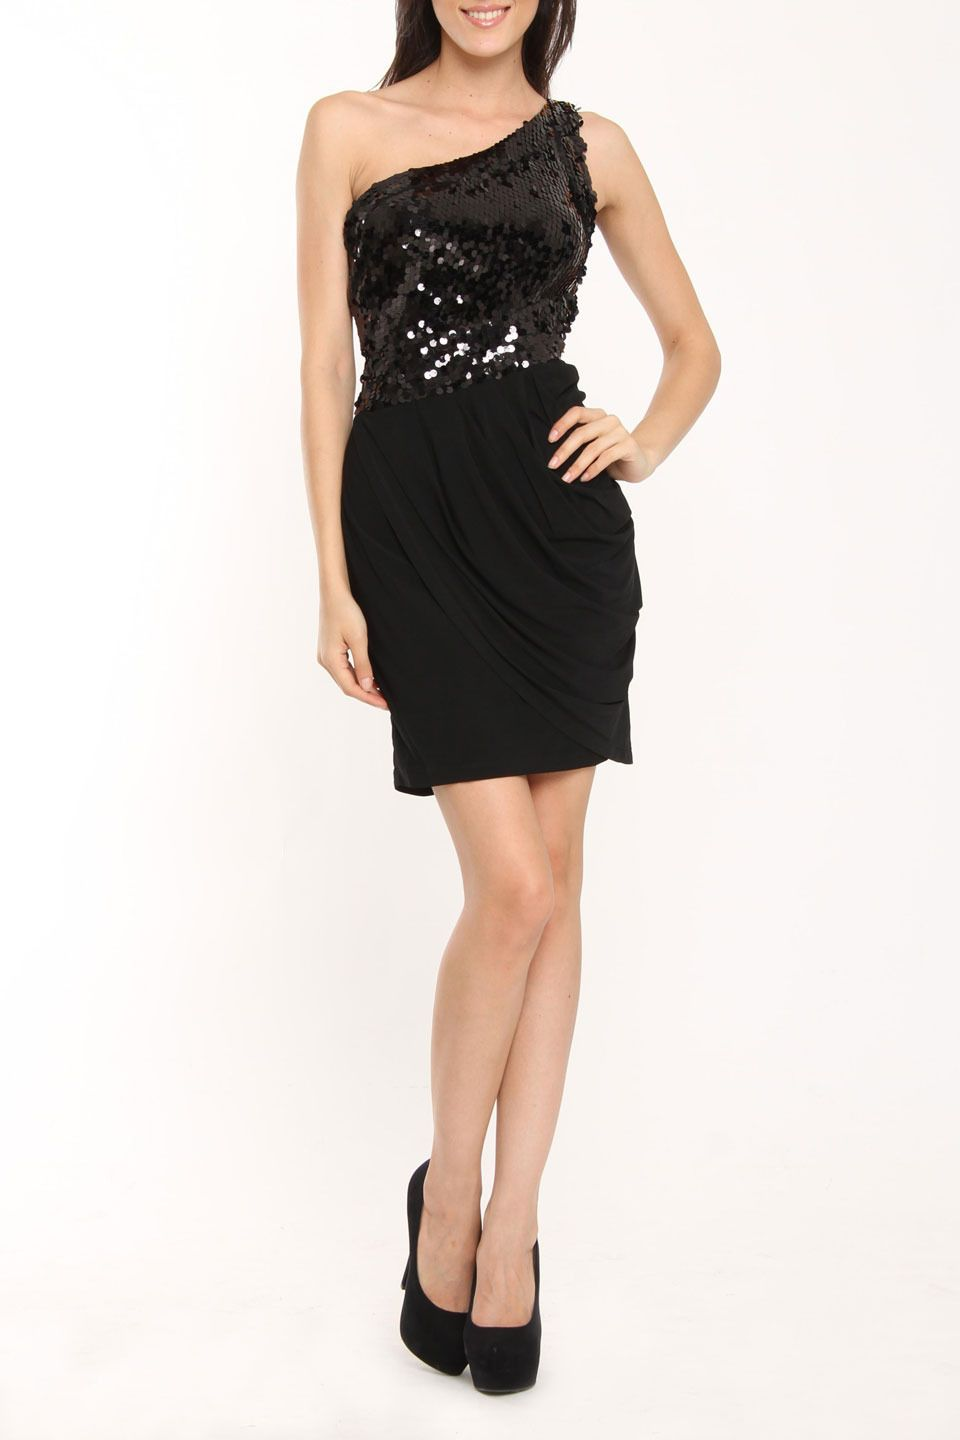 Outfit Issue Ny Short Jersey Sequin Dress In Black Perfection Y Here Is The Tutorial For Skirt